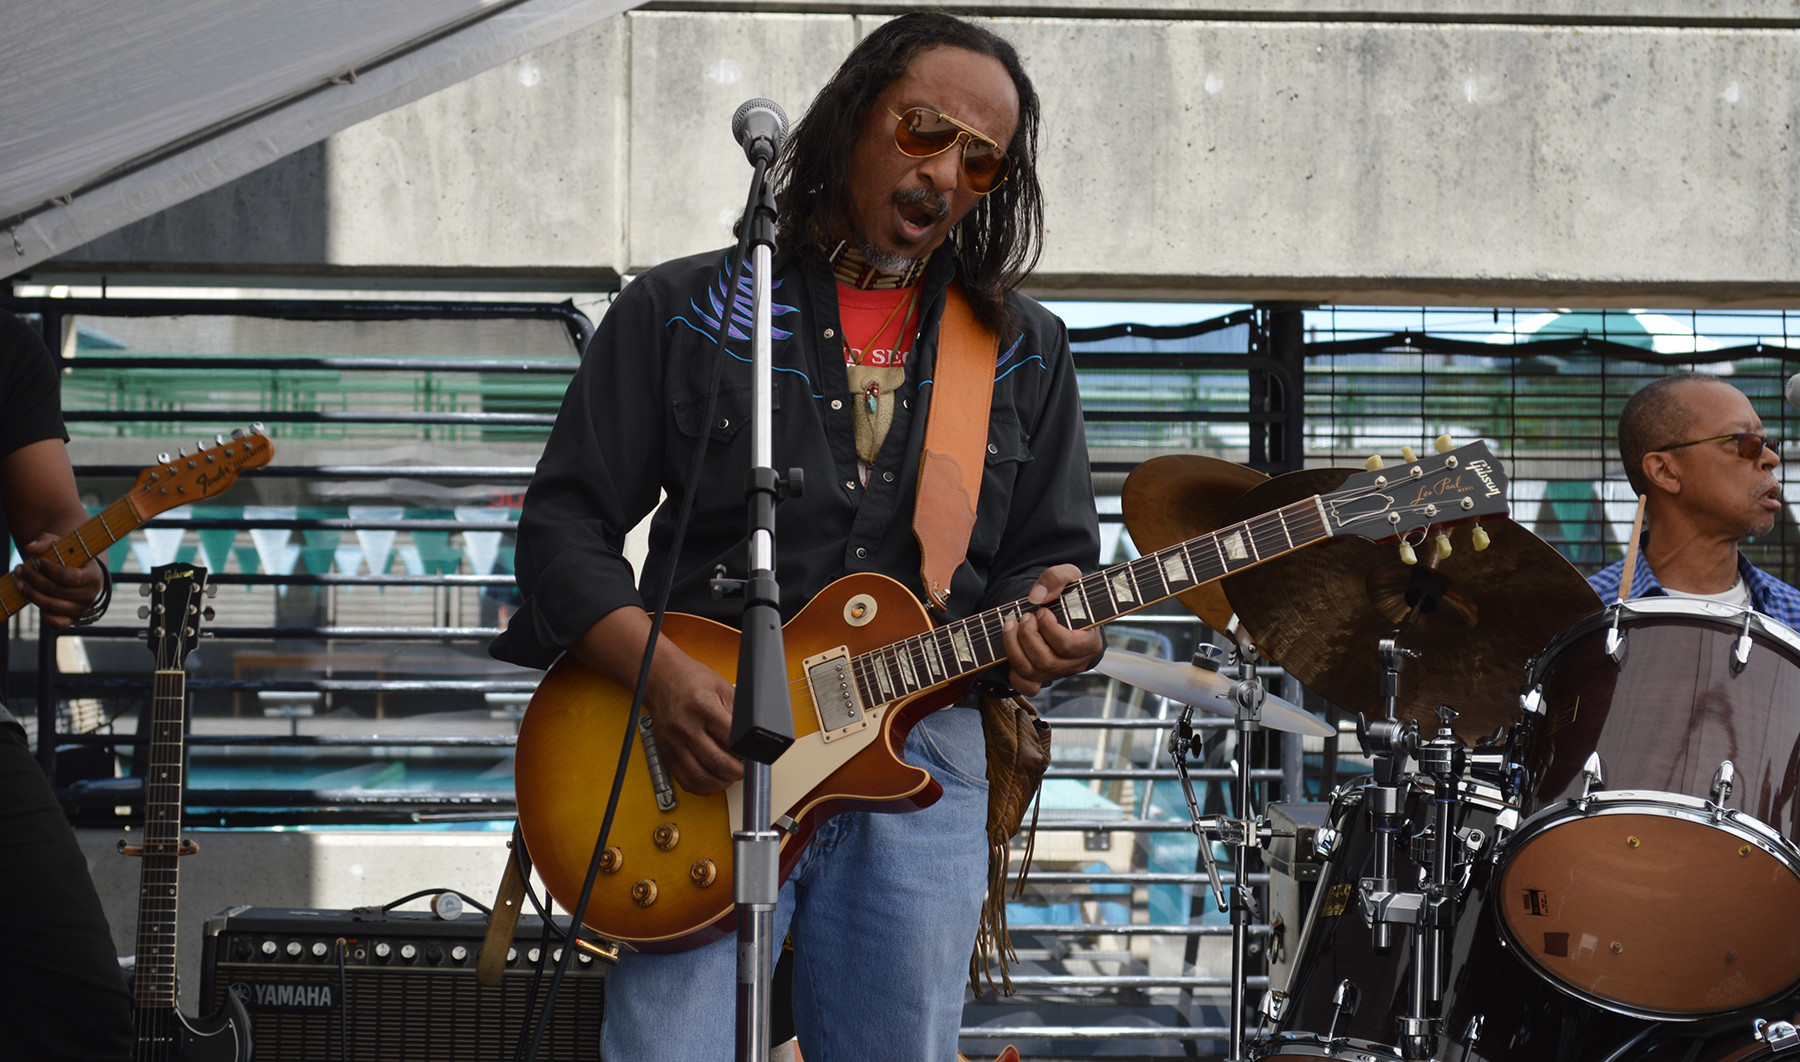 Guitarrist at Laney College Event